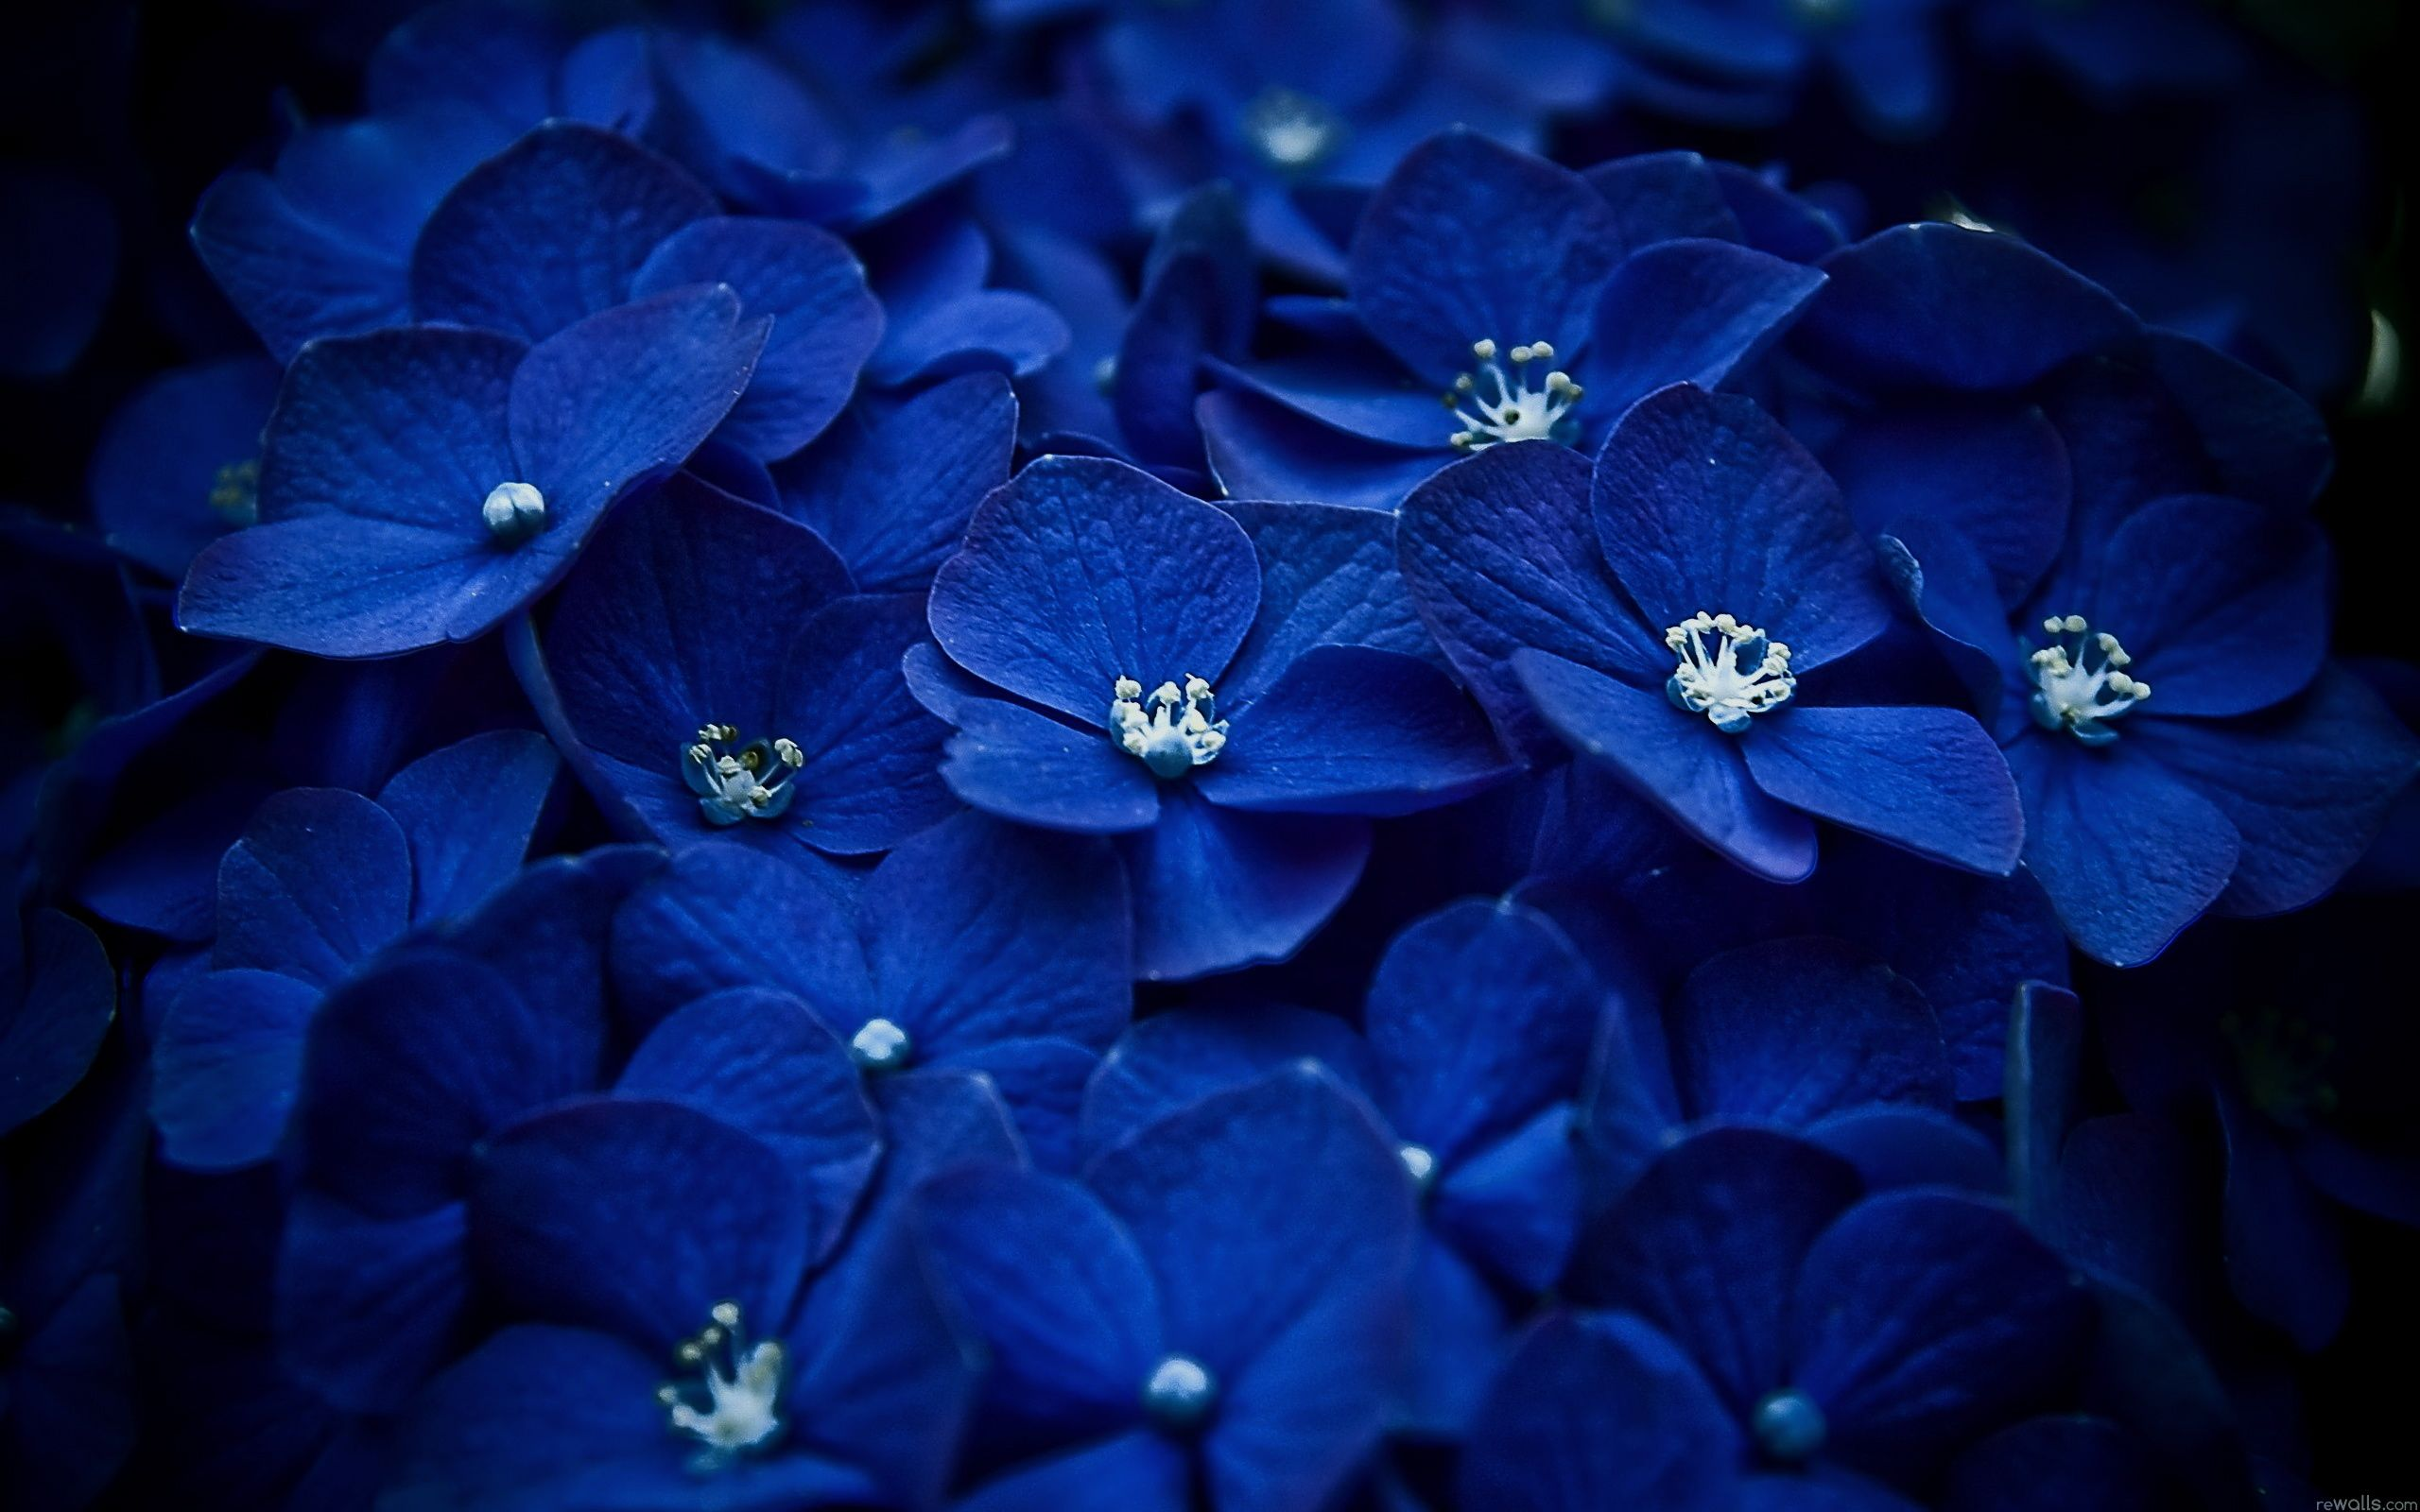 Computer Wallpapers Wallbase Cc Blue Flower Wallpaper Blue Flowers Flower Wallpaper